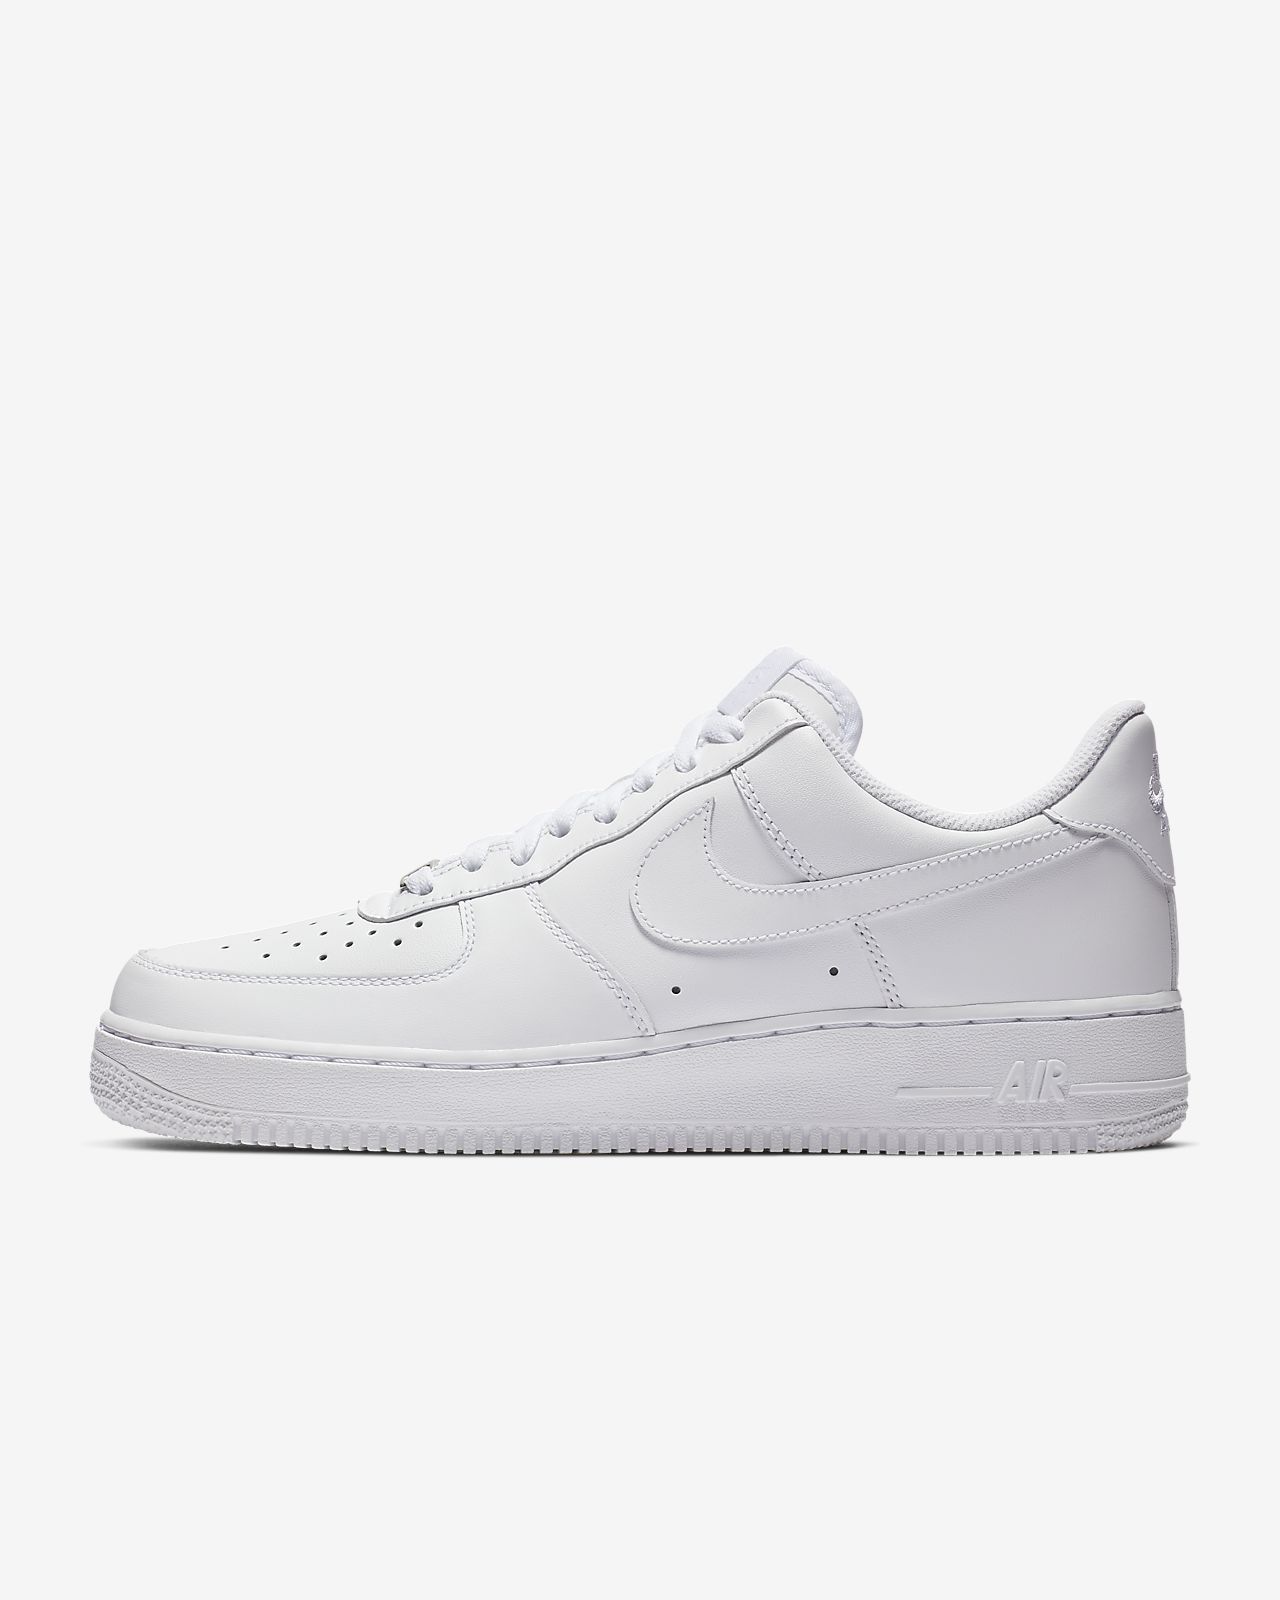 nouveau style 205f3 49c9c Nike Air Force 1 '07 Women's Shoe